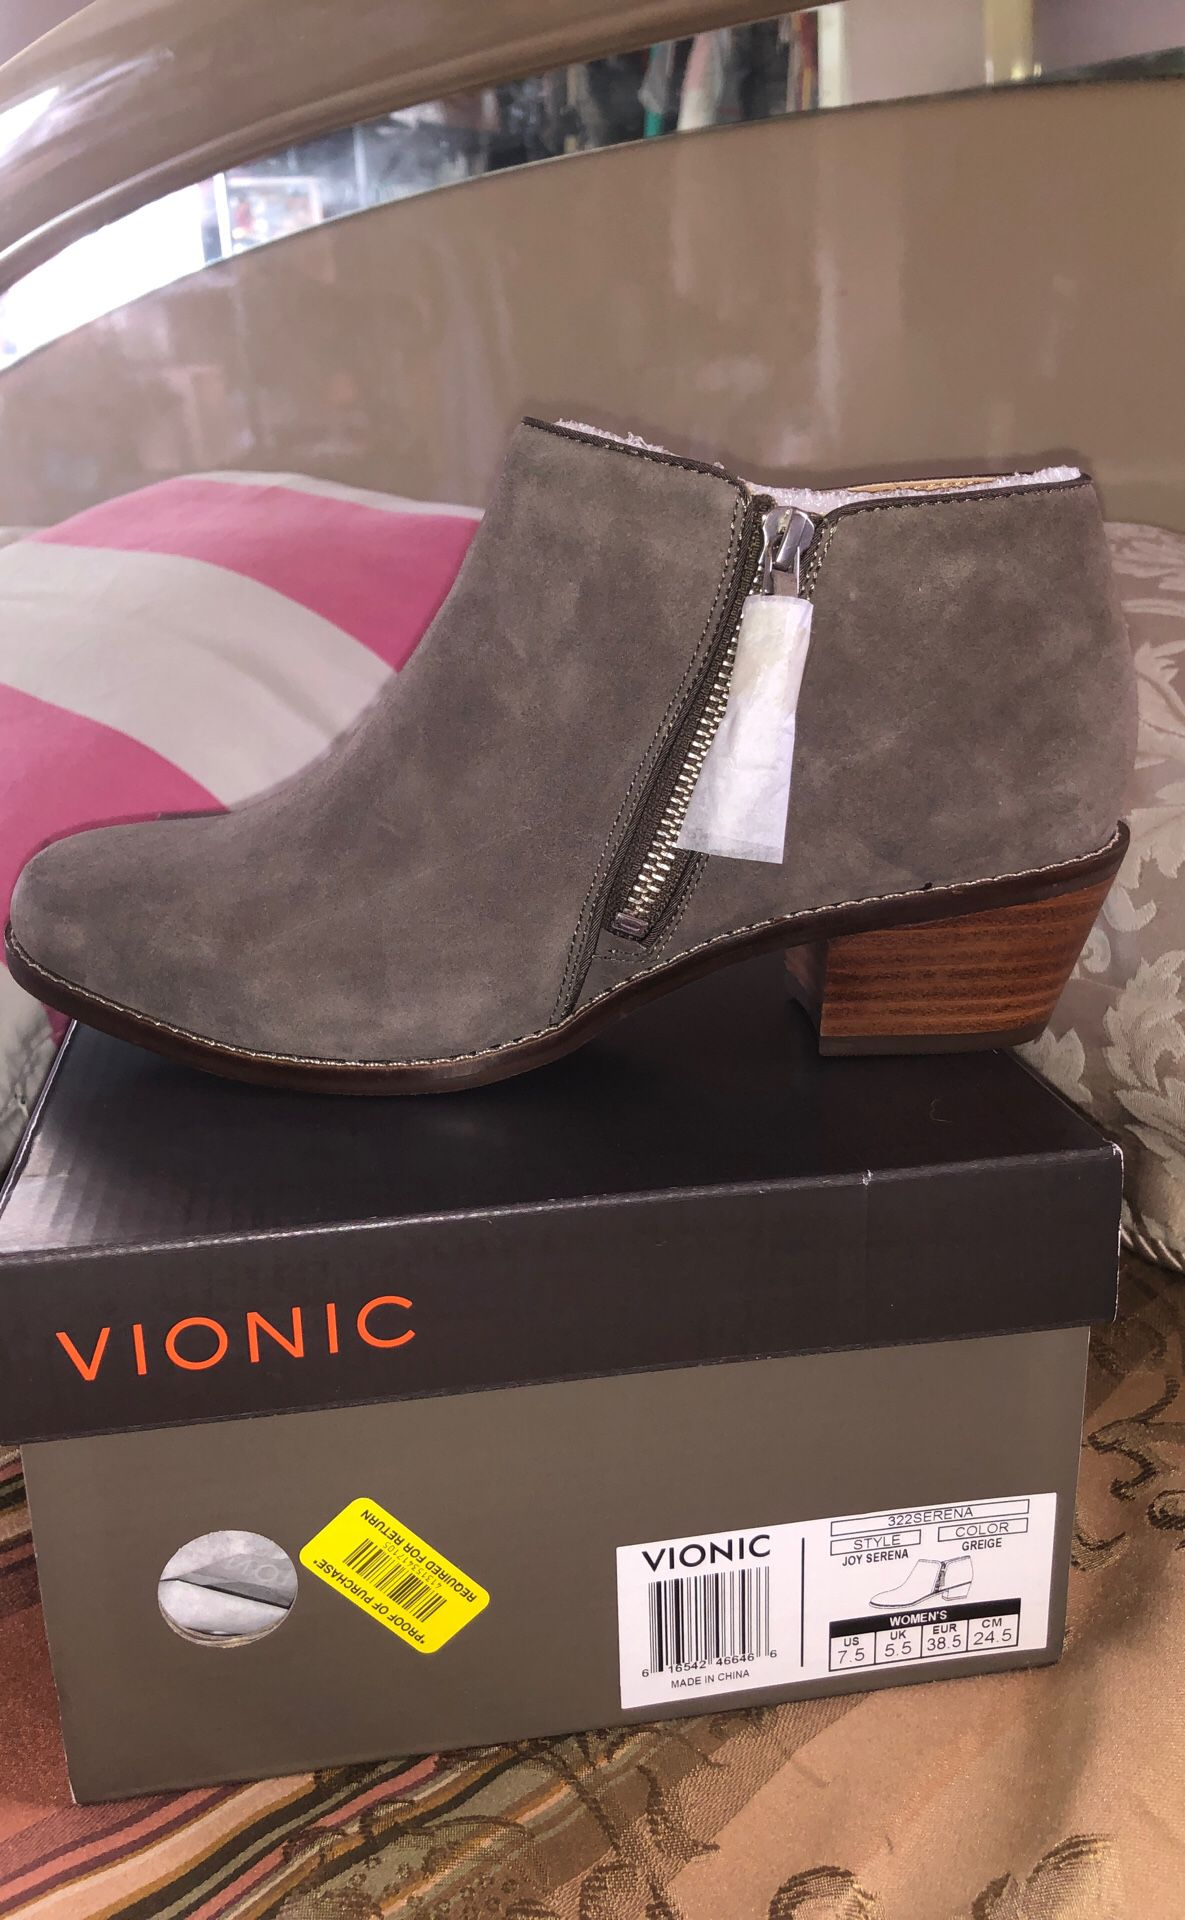 Vionic booties, size 7.5m